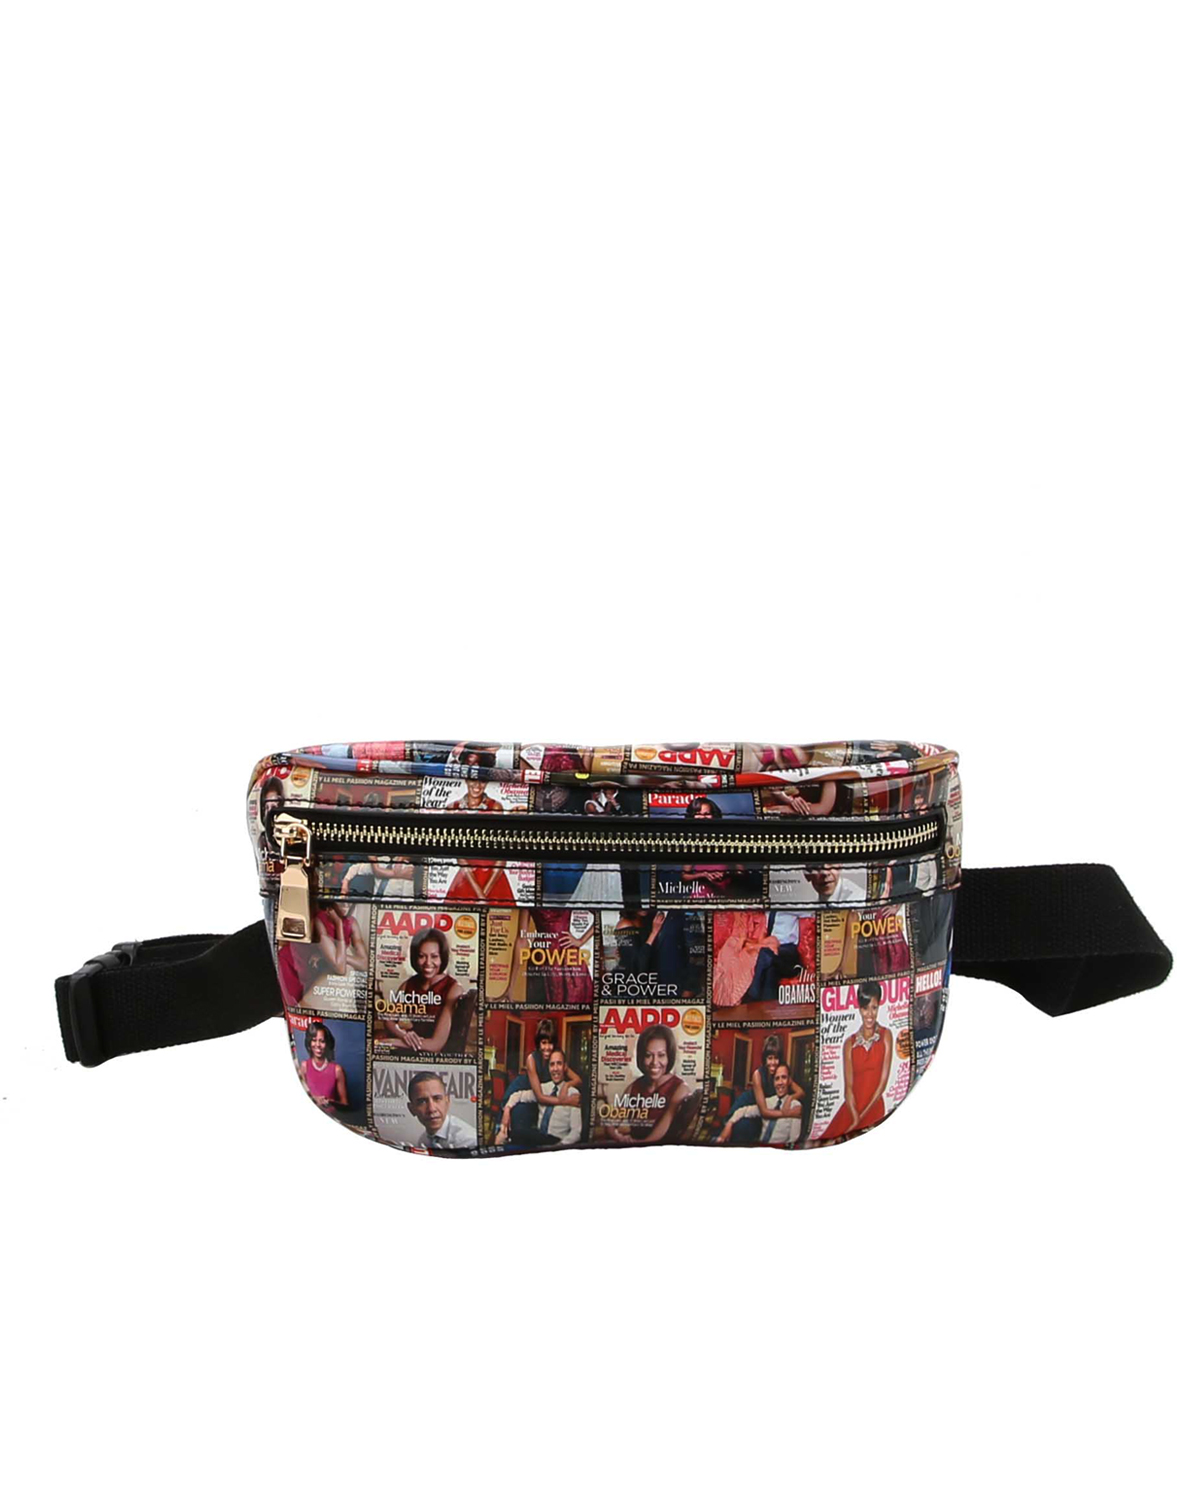 PQS006(MUL)-wholesale-fanny-pack-waist-bag-michelle-barack-obama-magazine-patent-vegan-leather-canvas-belt(0).jpg